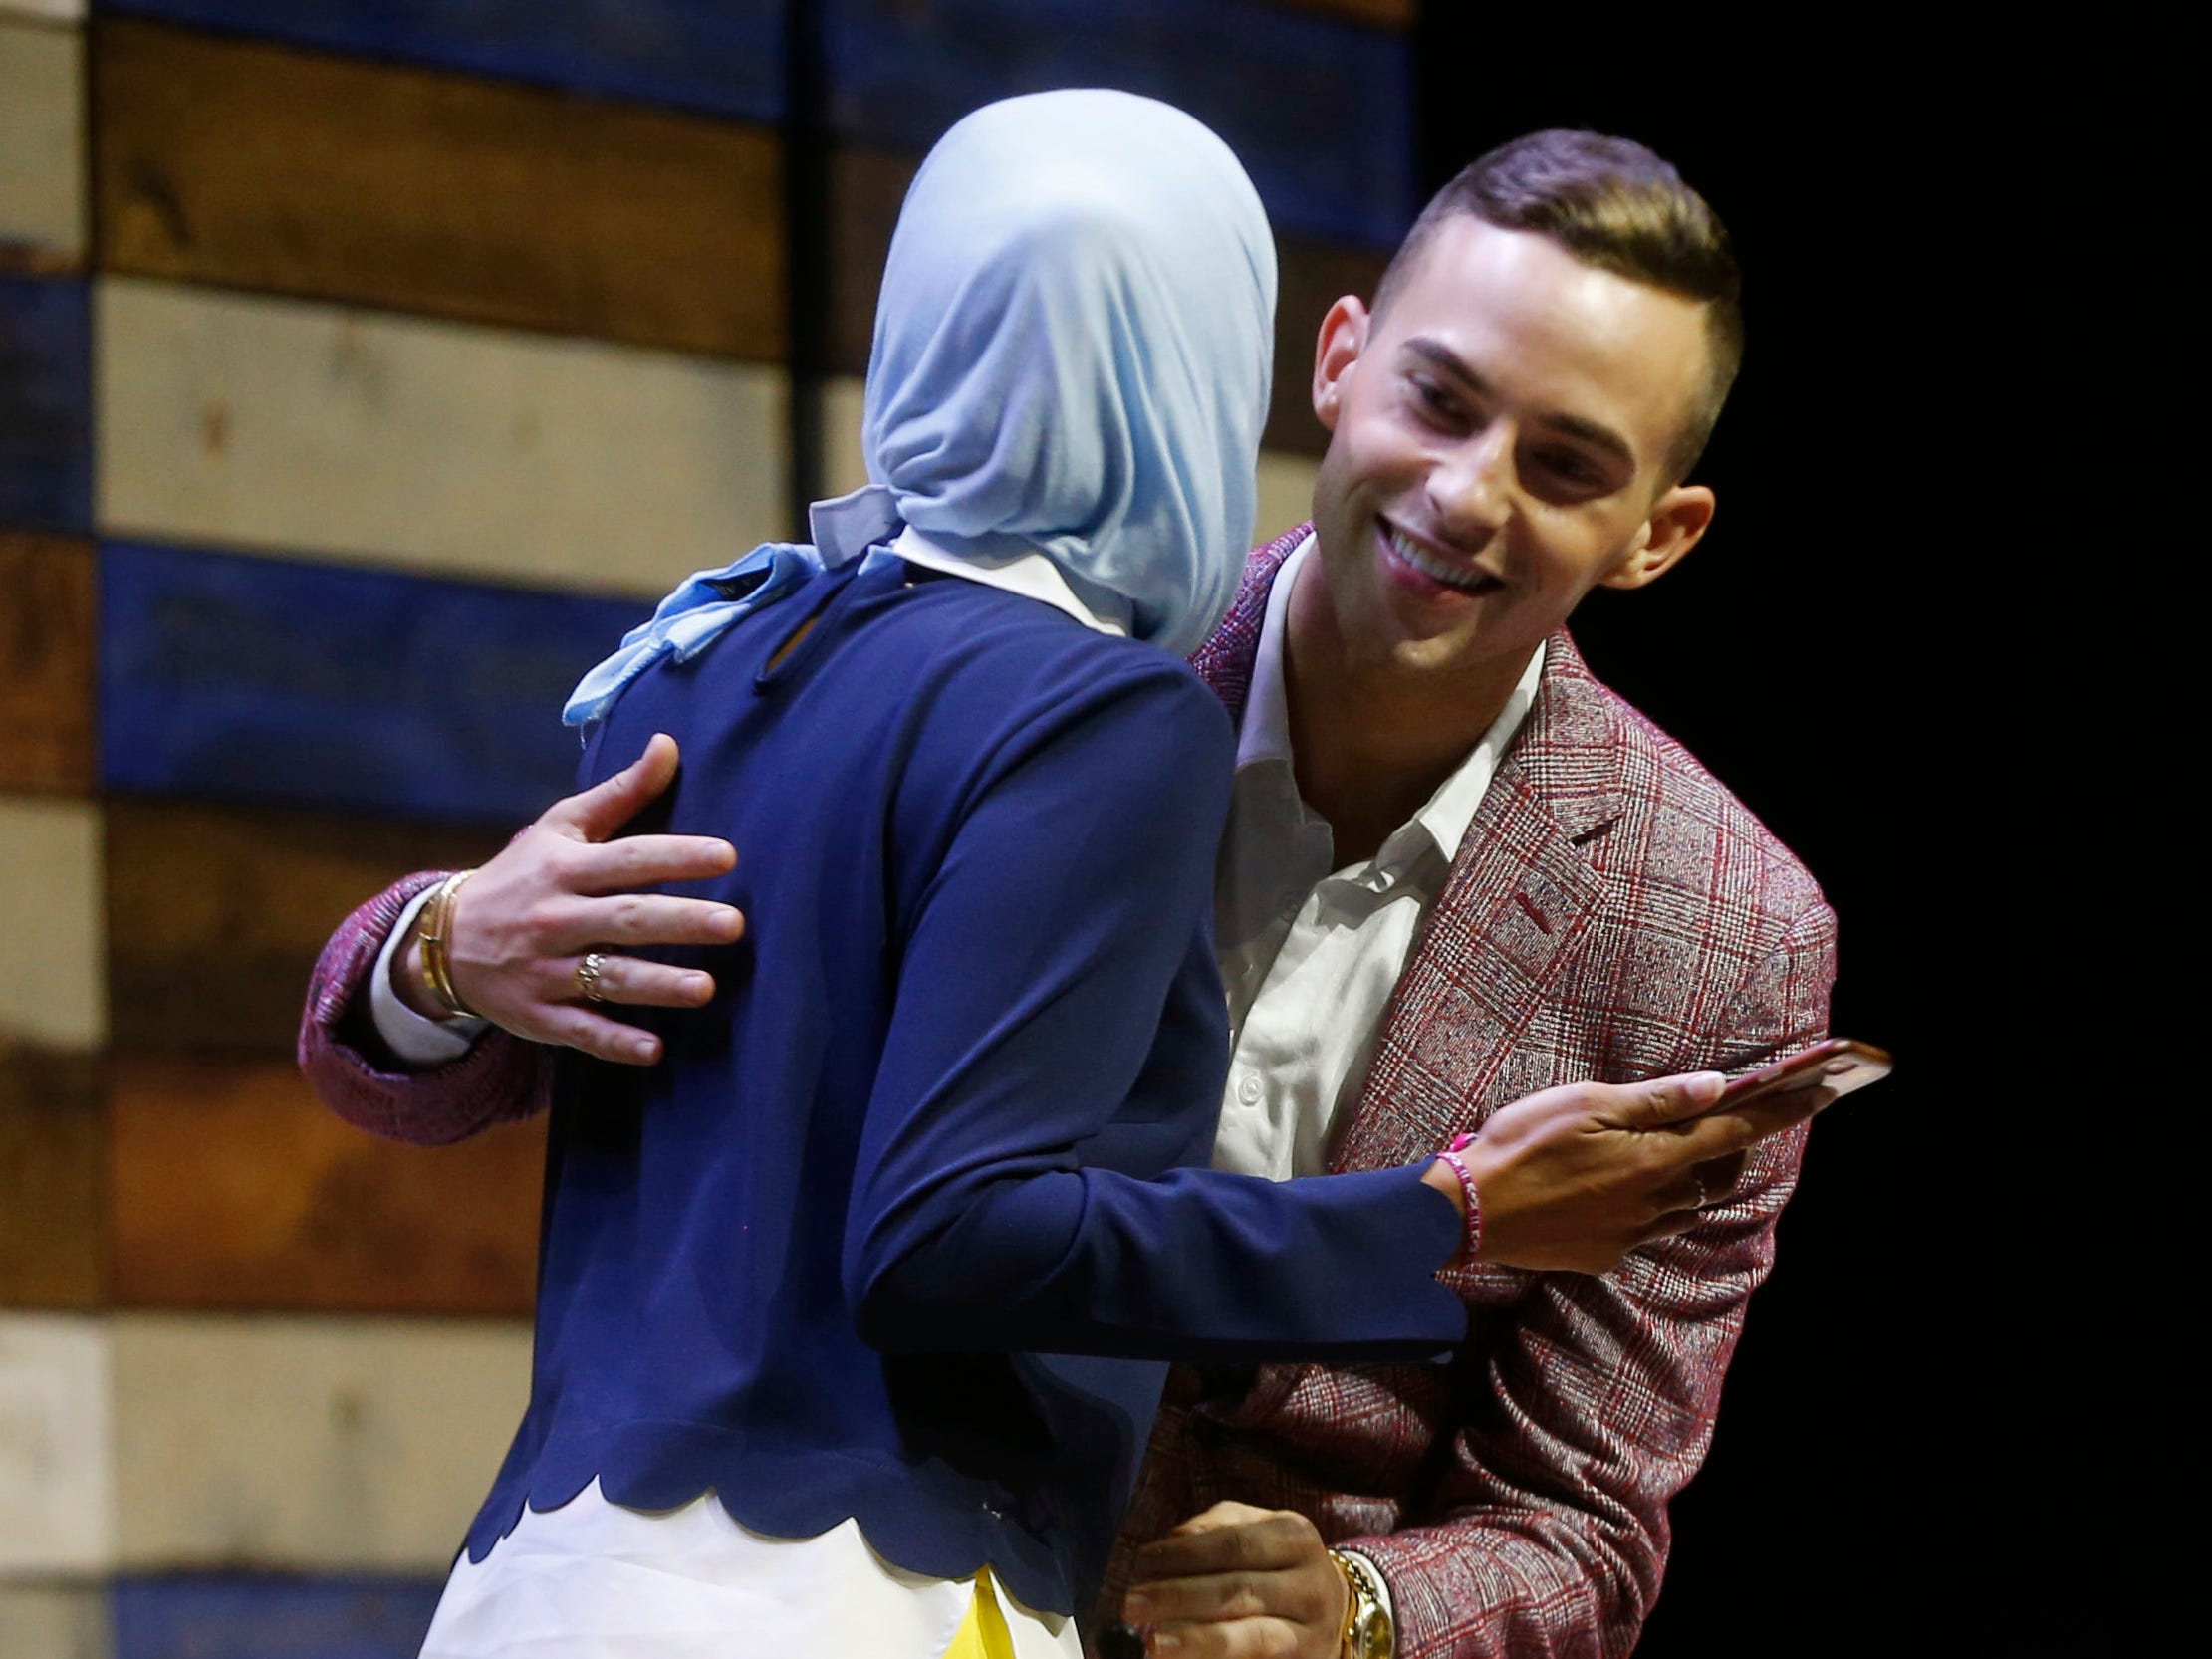 Olympic figure skater Adam Rippon (right) greets WHBF-TV reporter and moderator Tahera Rahman as he takes the stage Saturday, Aug. 4, 2018, at Newbo Evolve in Cedar Rapids, Iowa. The festival featured music, art and inspirational speakers over three days.